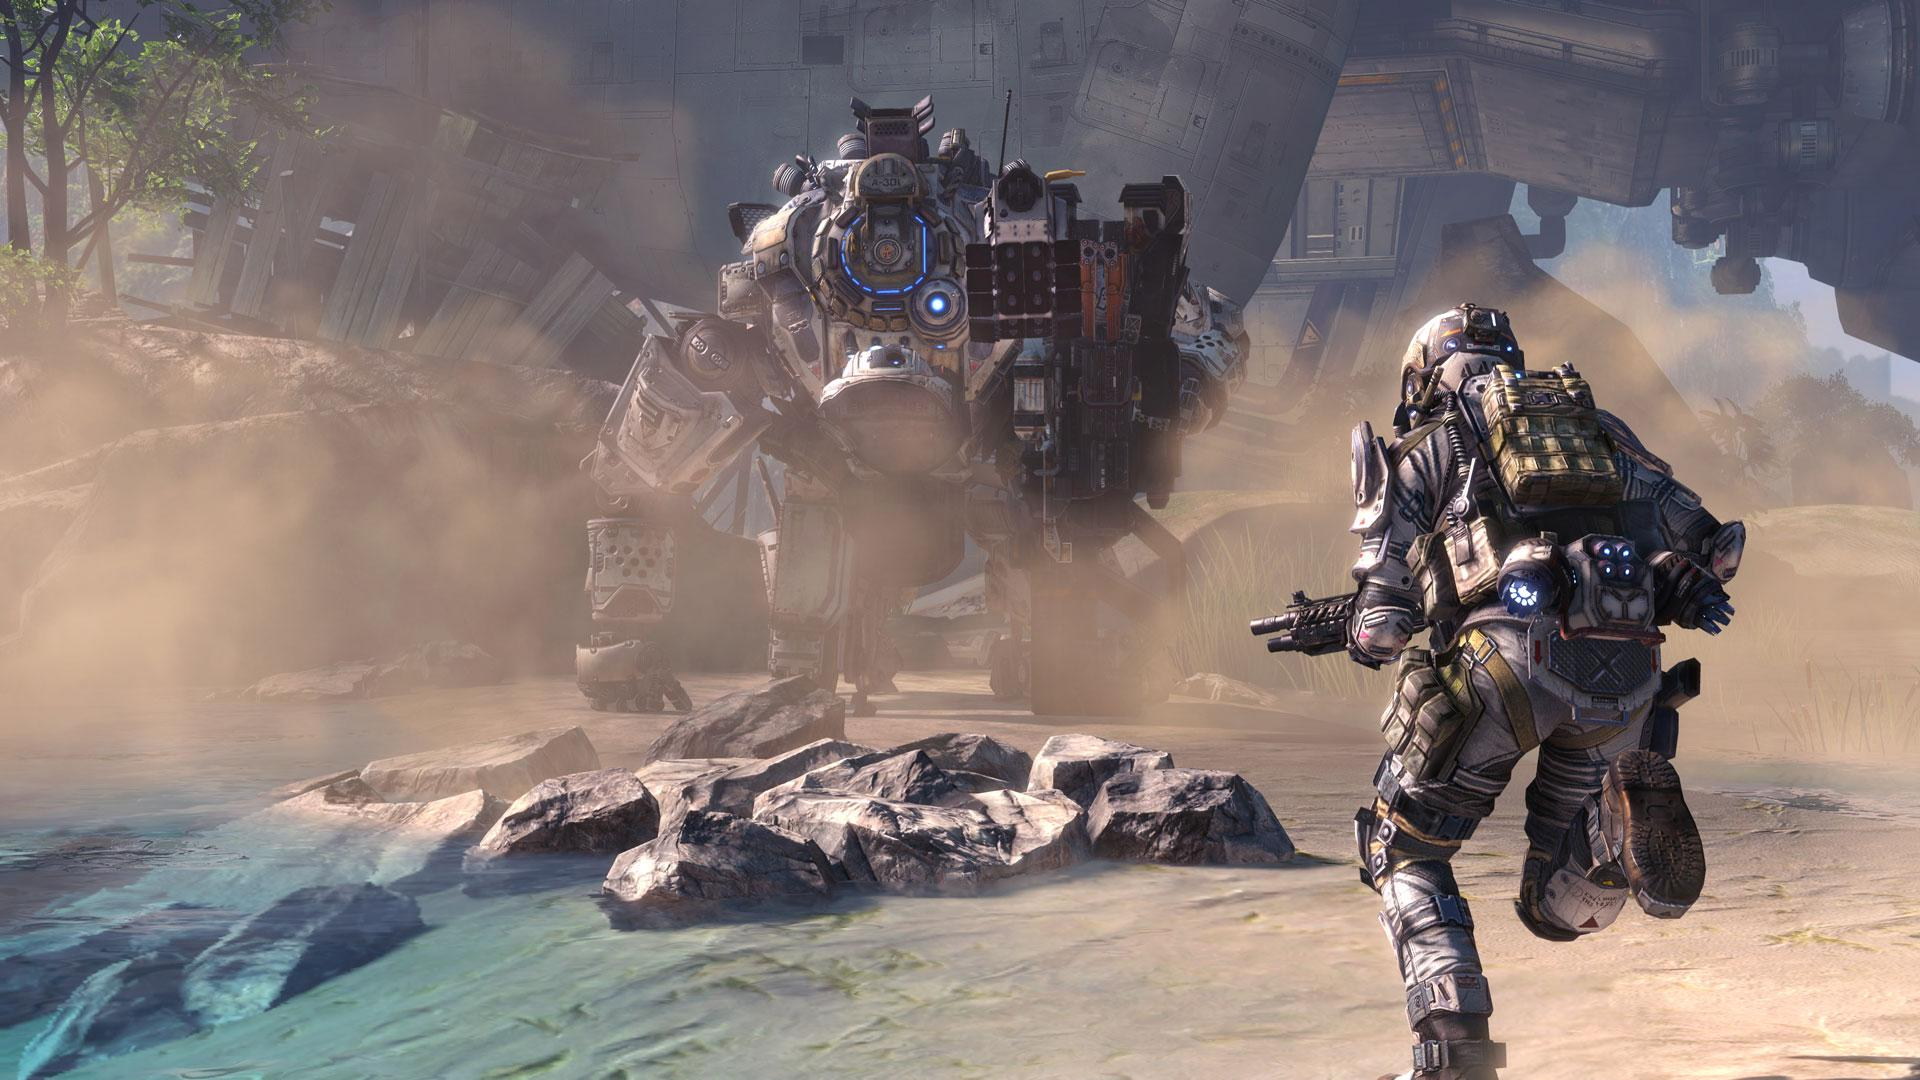 Titanfall Res: 1920x1080 HD / Size:247kb. Views: 6088